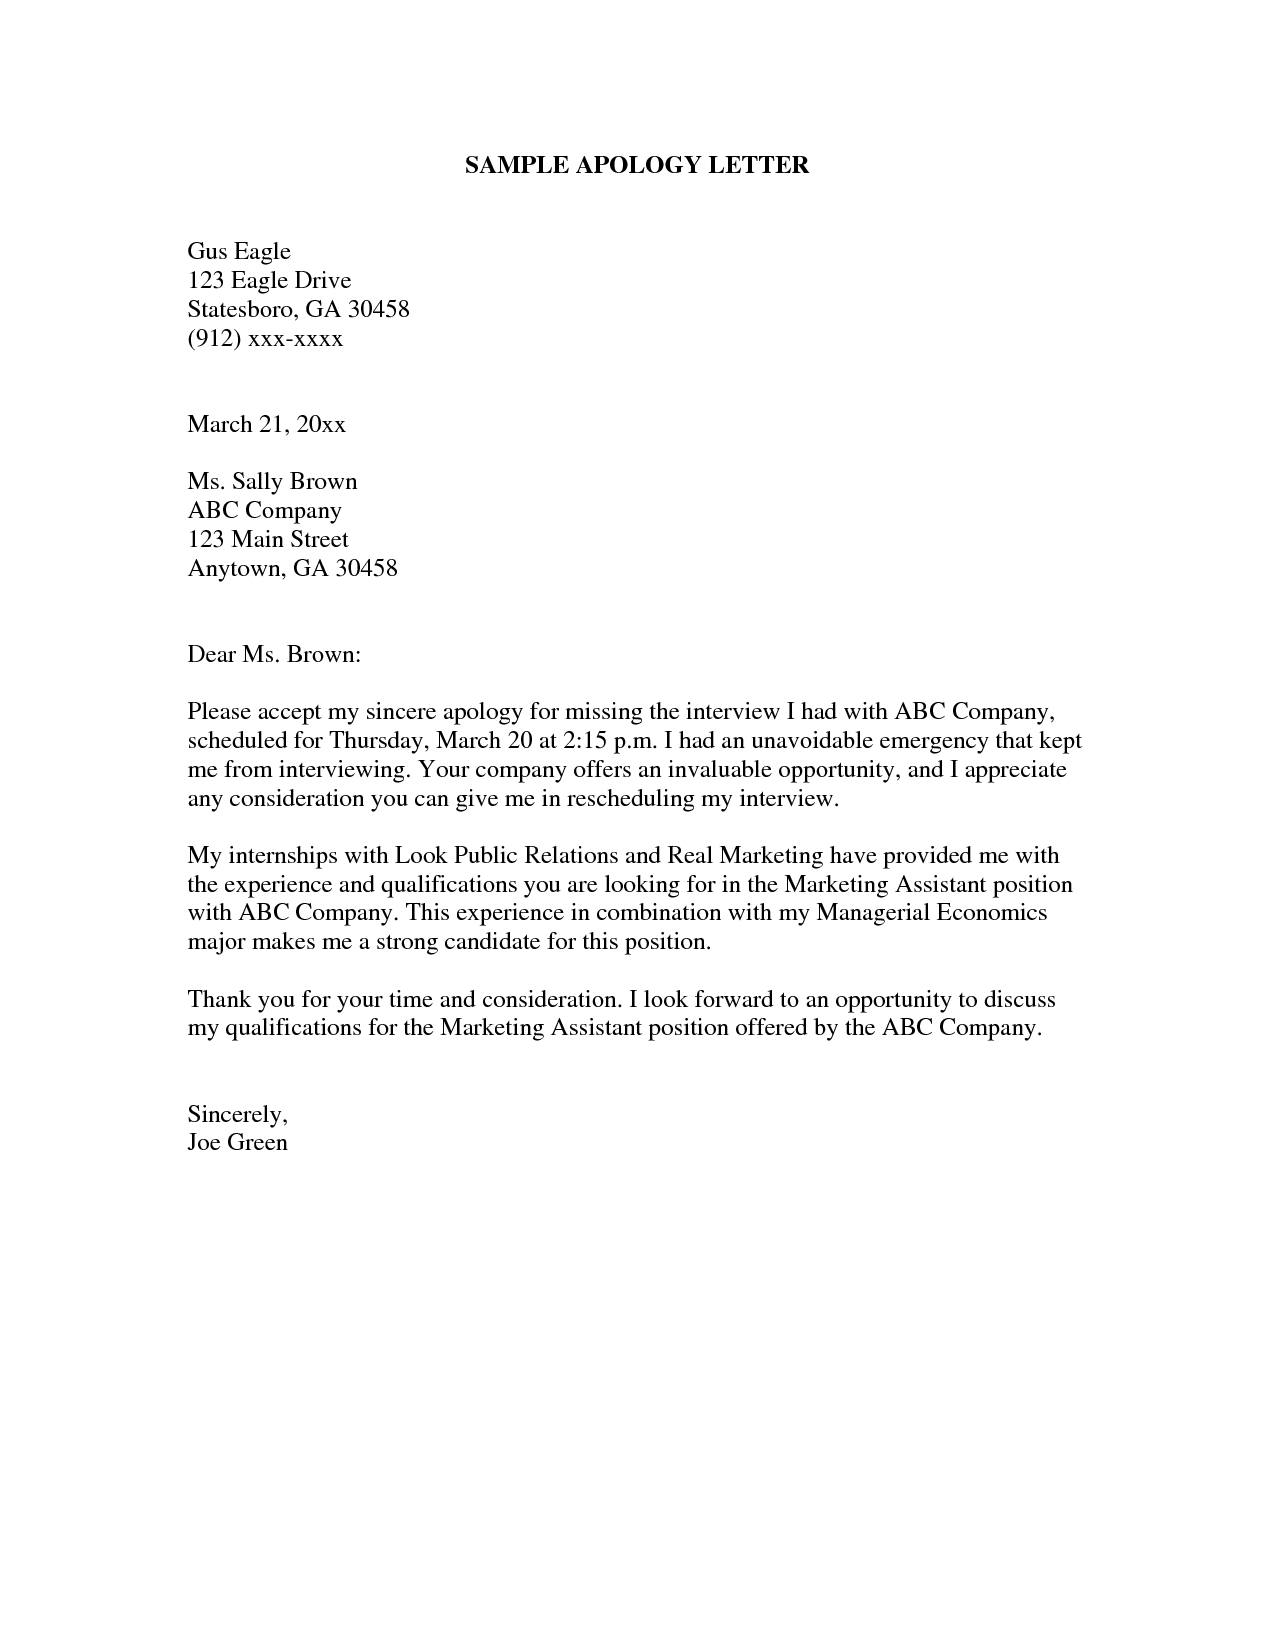 Format Of Apologize Letter Best Professional Apology Free Sample